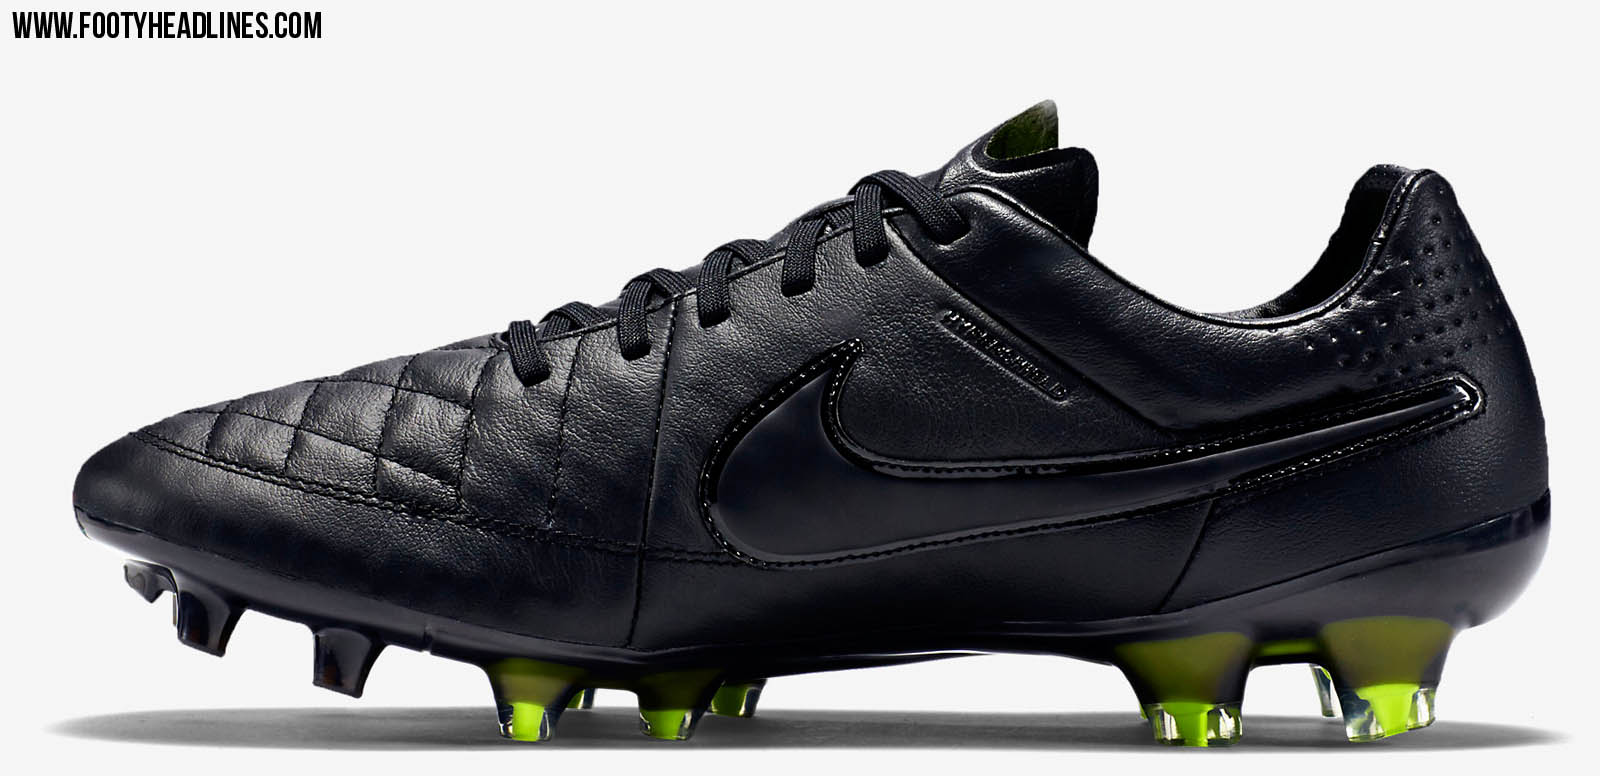 blackout reflective nike tiempo legend v 2015 boots. Black Bedroom Furniture Sets. Home Design Ideas